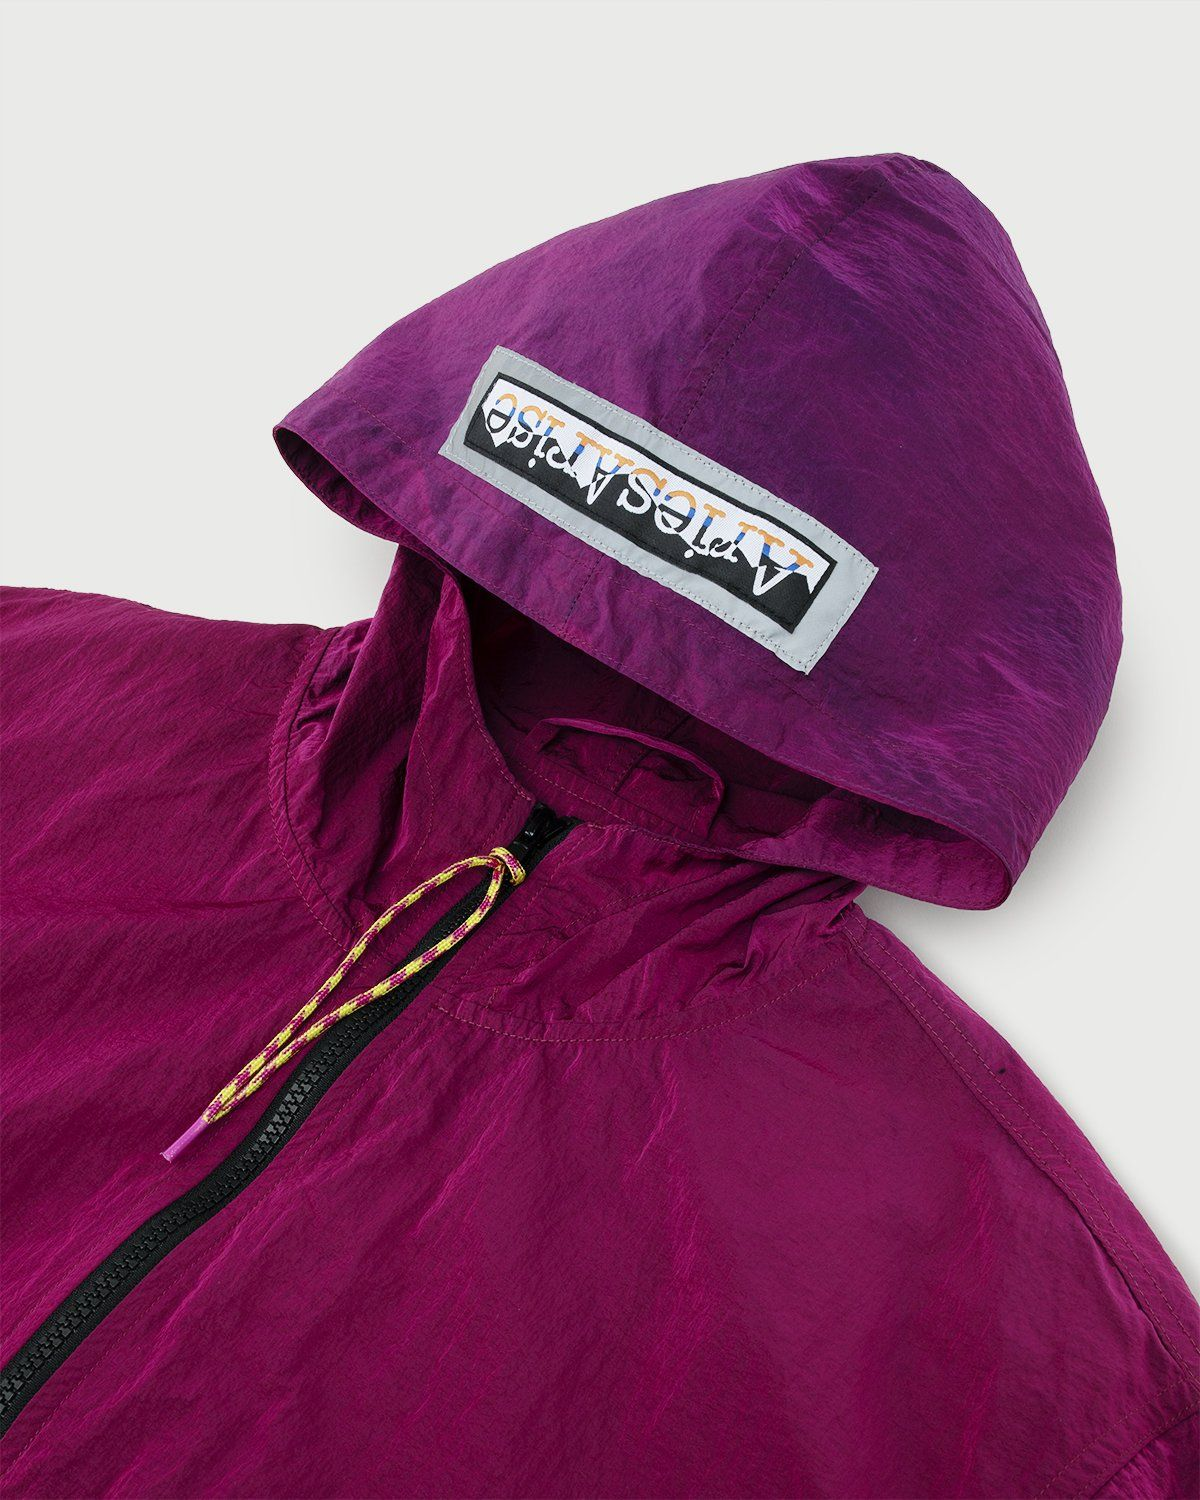 Aries - Ombre Dyed Tech Jacket Fuchsia - Image 2